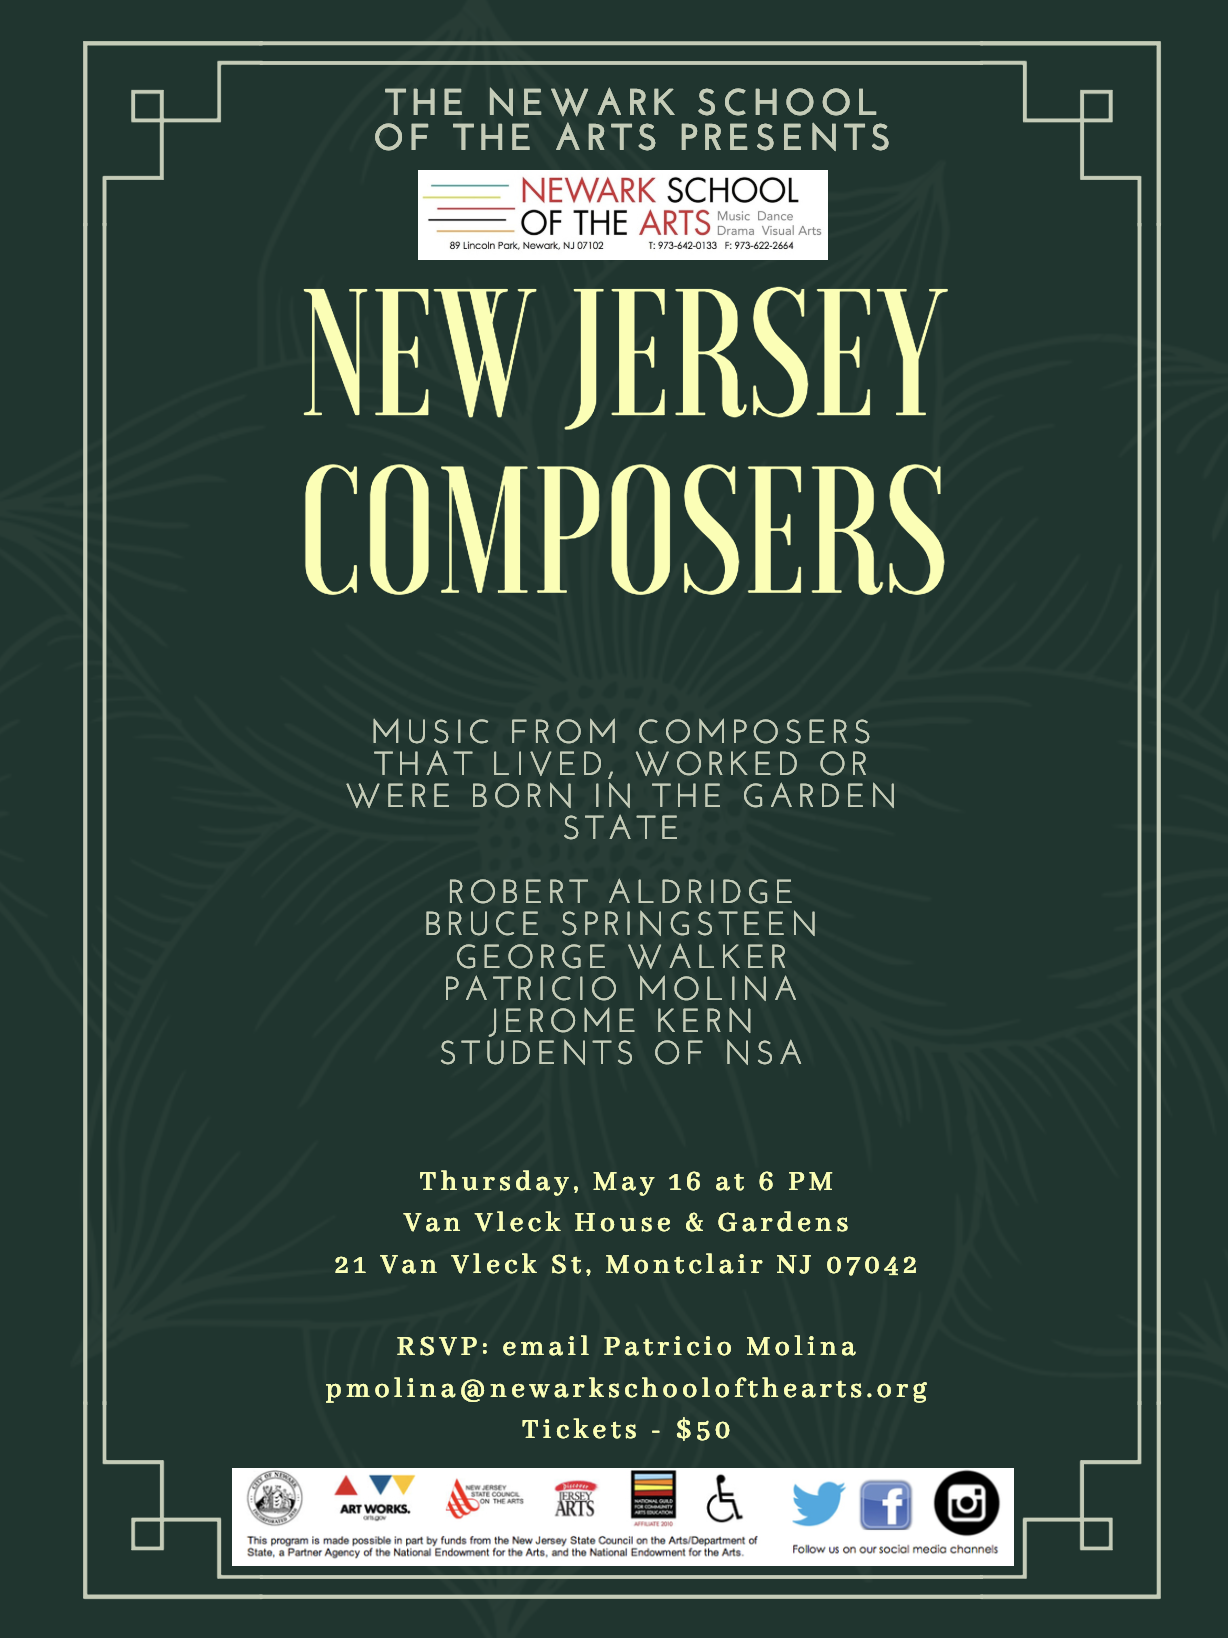 NJ Composers Concert Ticket — Newark School of the Arts